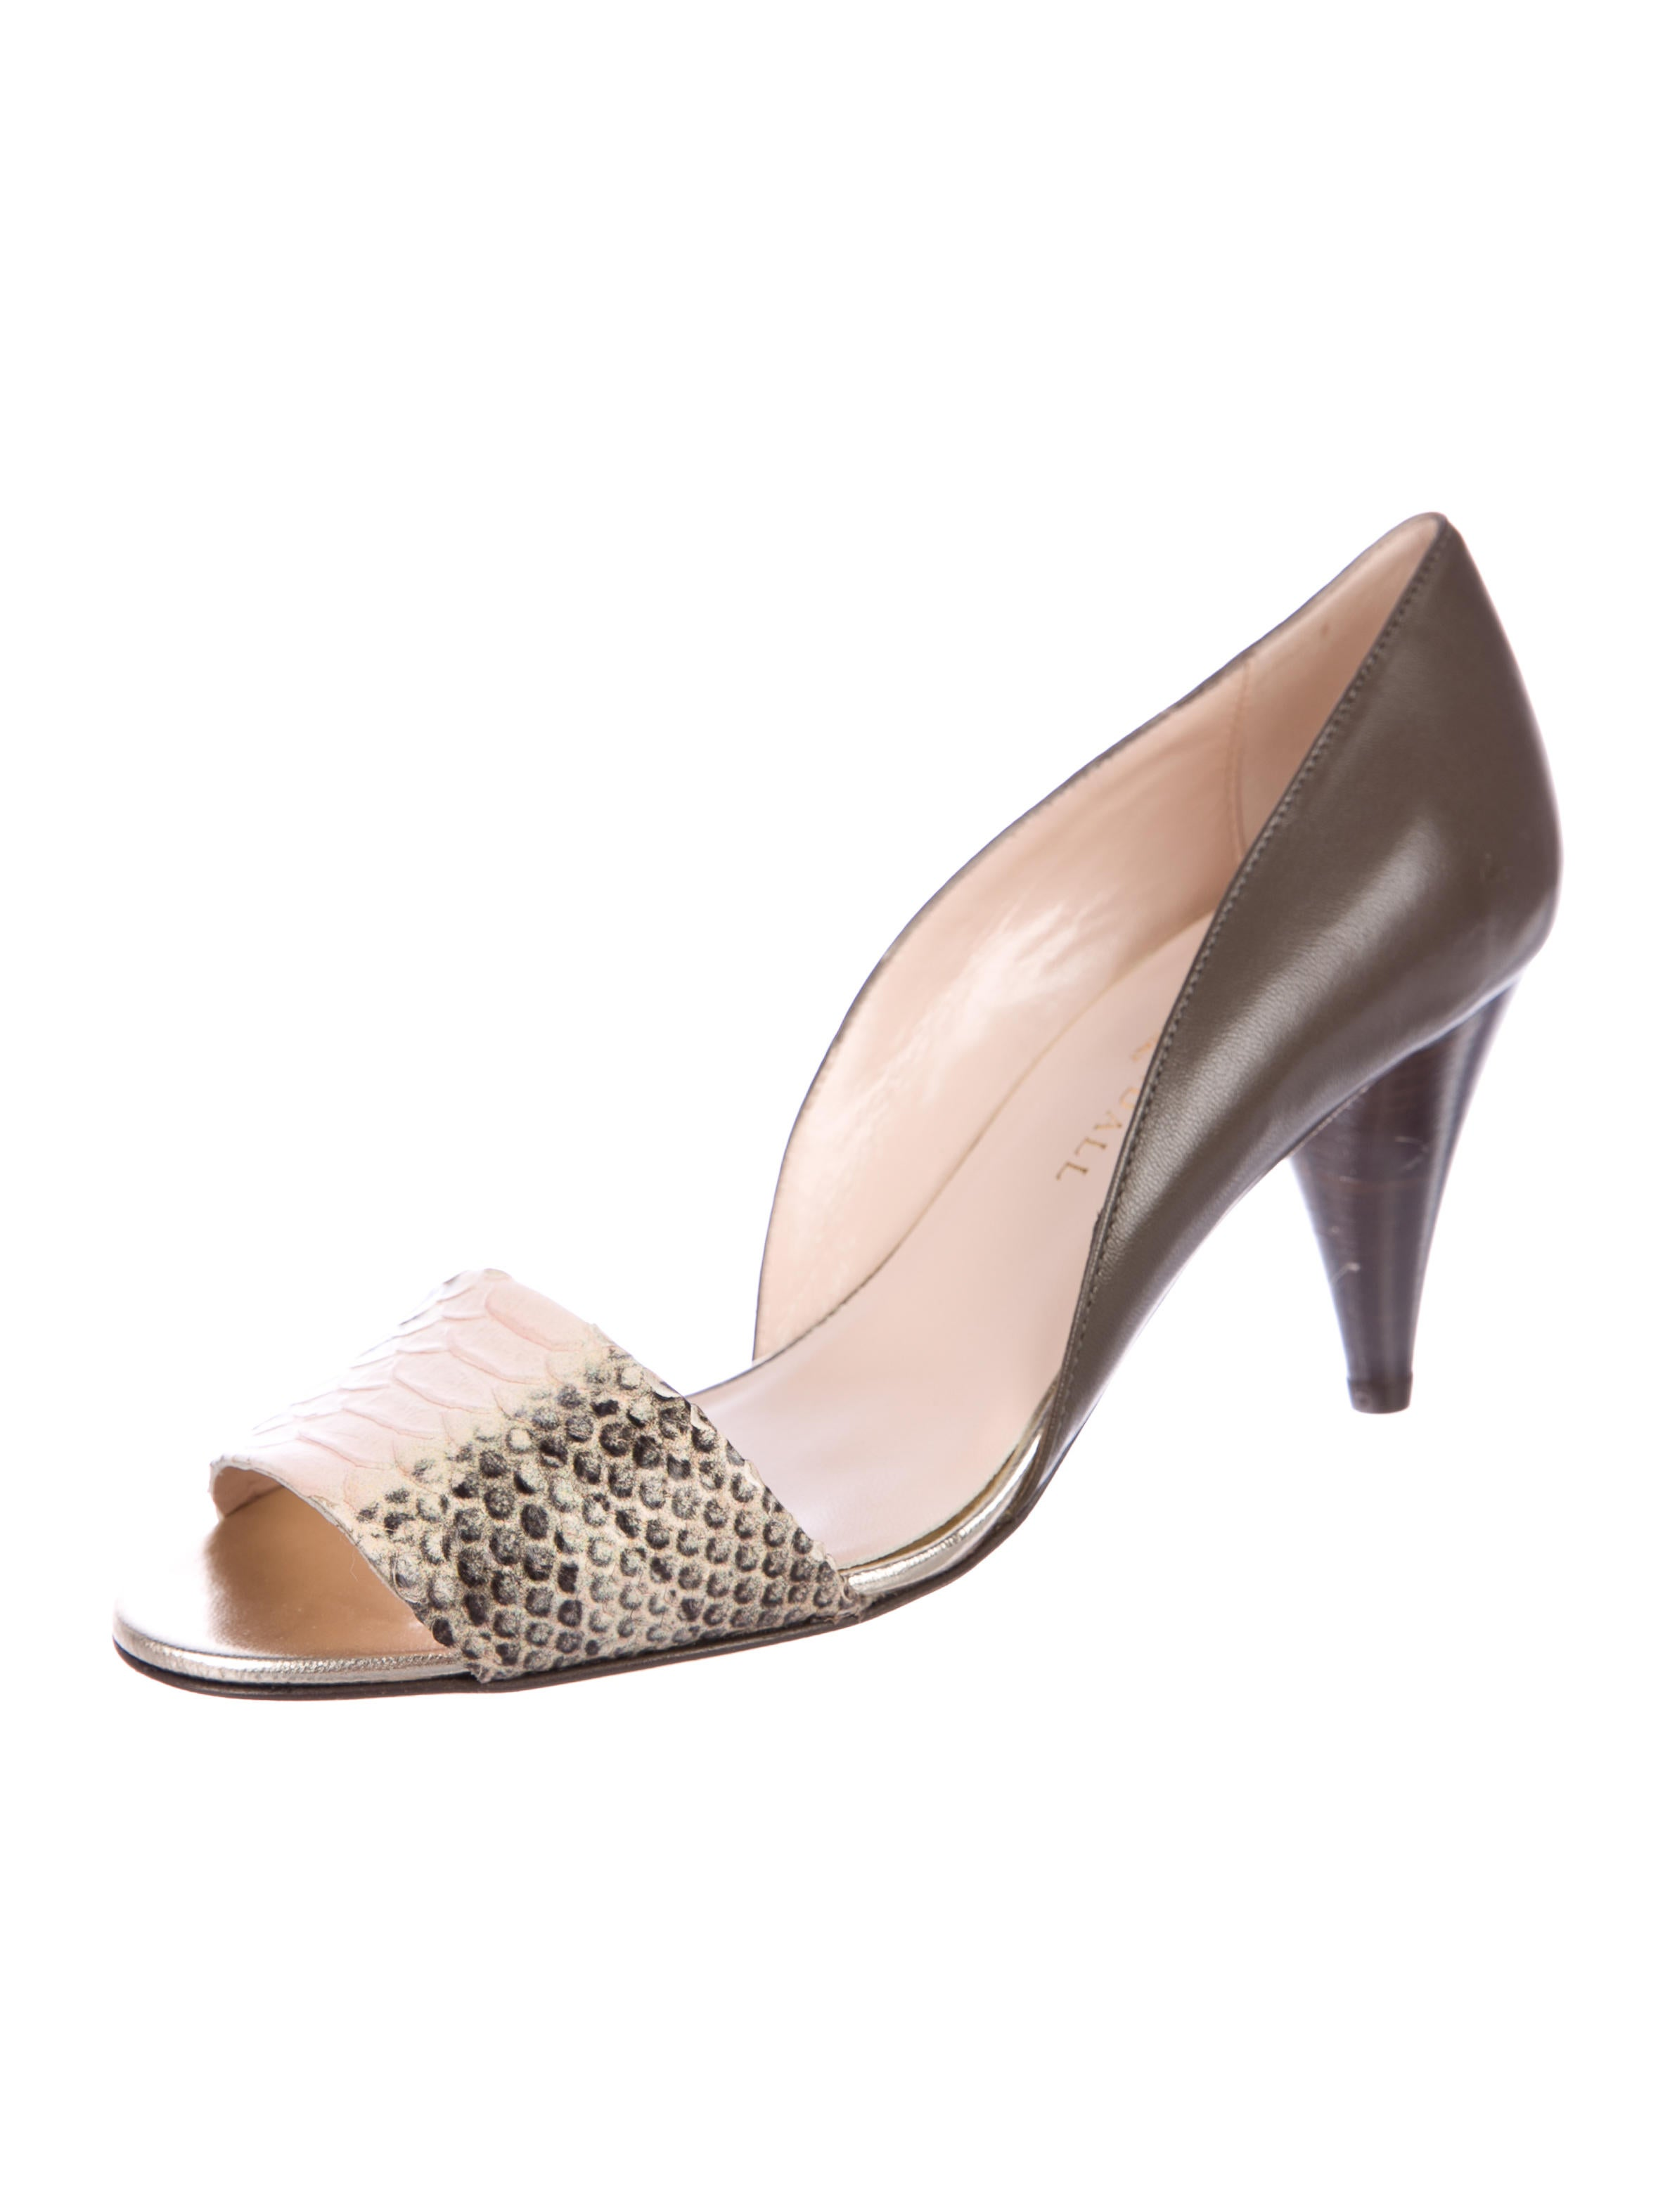 Loeffler Randall Embossed d'Orsay Pumps w/ Tags cheap exclusive on hot sale ebay cheap online clearance discounts best wholesale cheap online IGi81